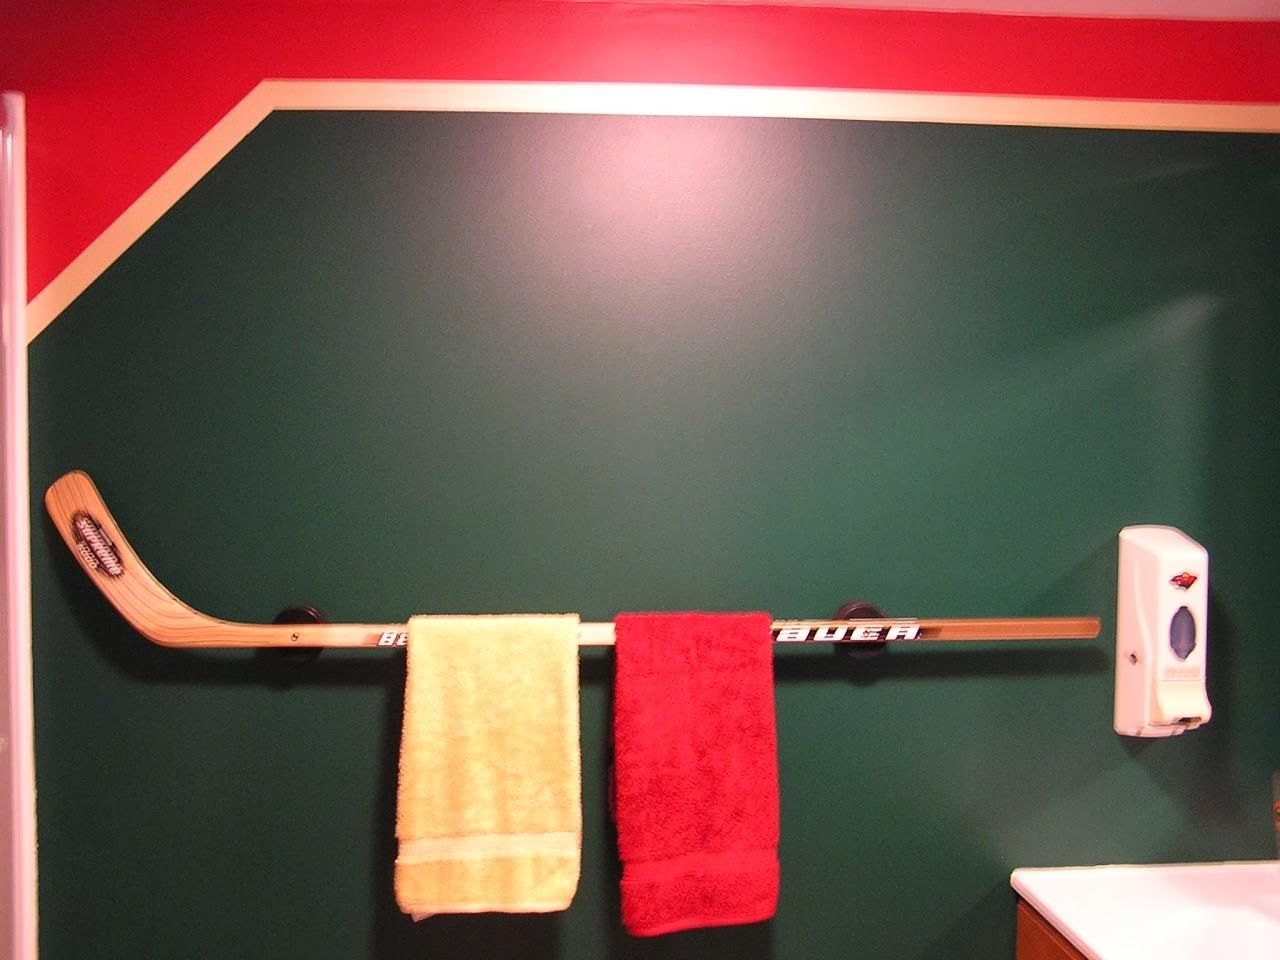 Extreme Interior Design Sports Meet Bathroom Decor Hockey Towels And Met